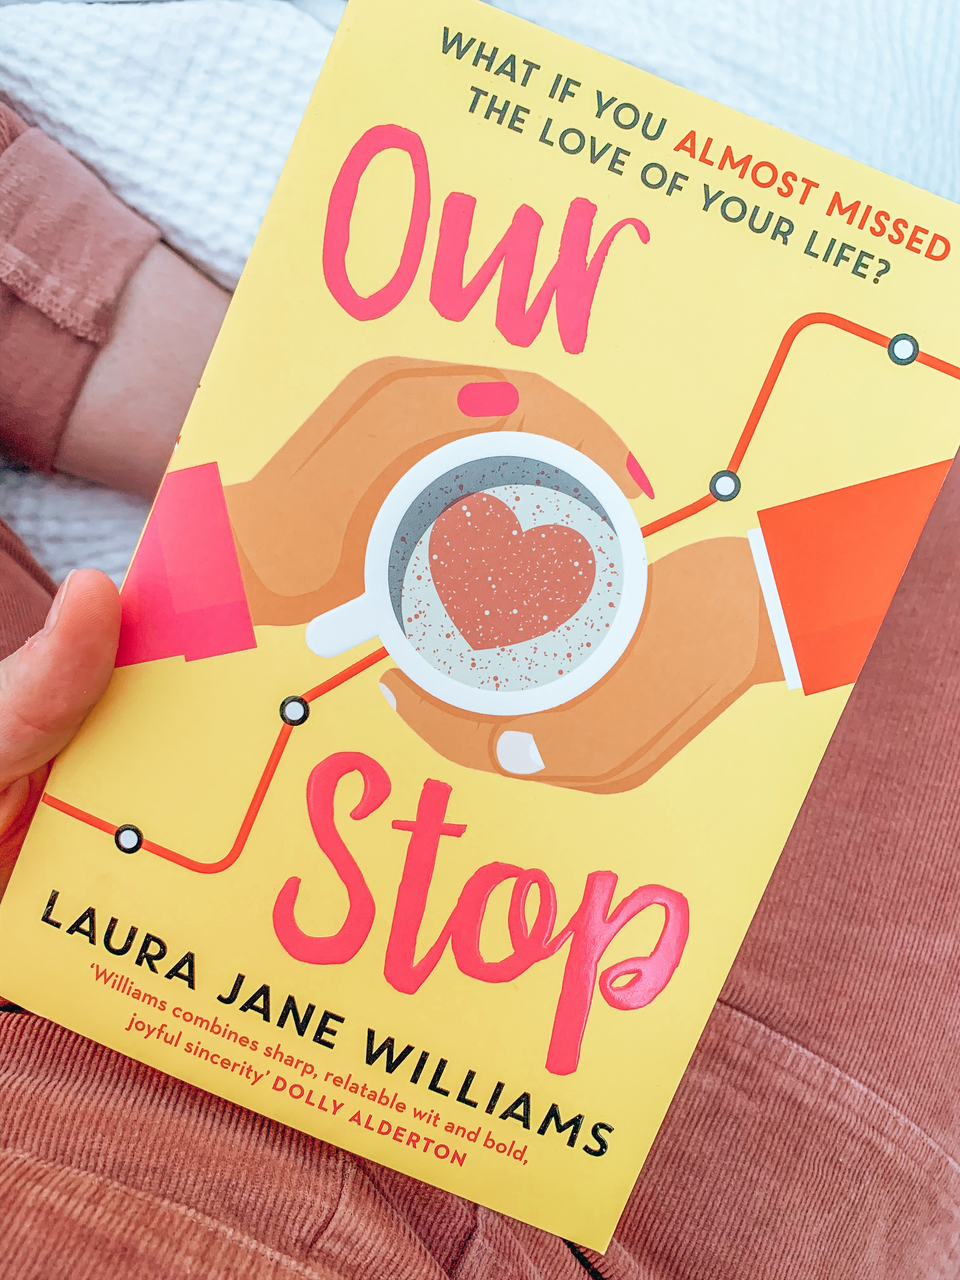 20 books to read in 2020 Our Stop by Laura Jane Williams book cover featuring coffee cup